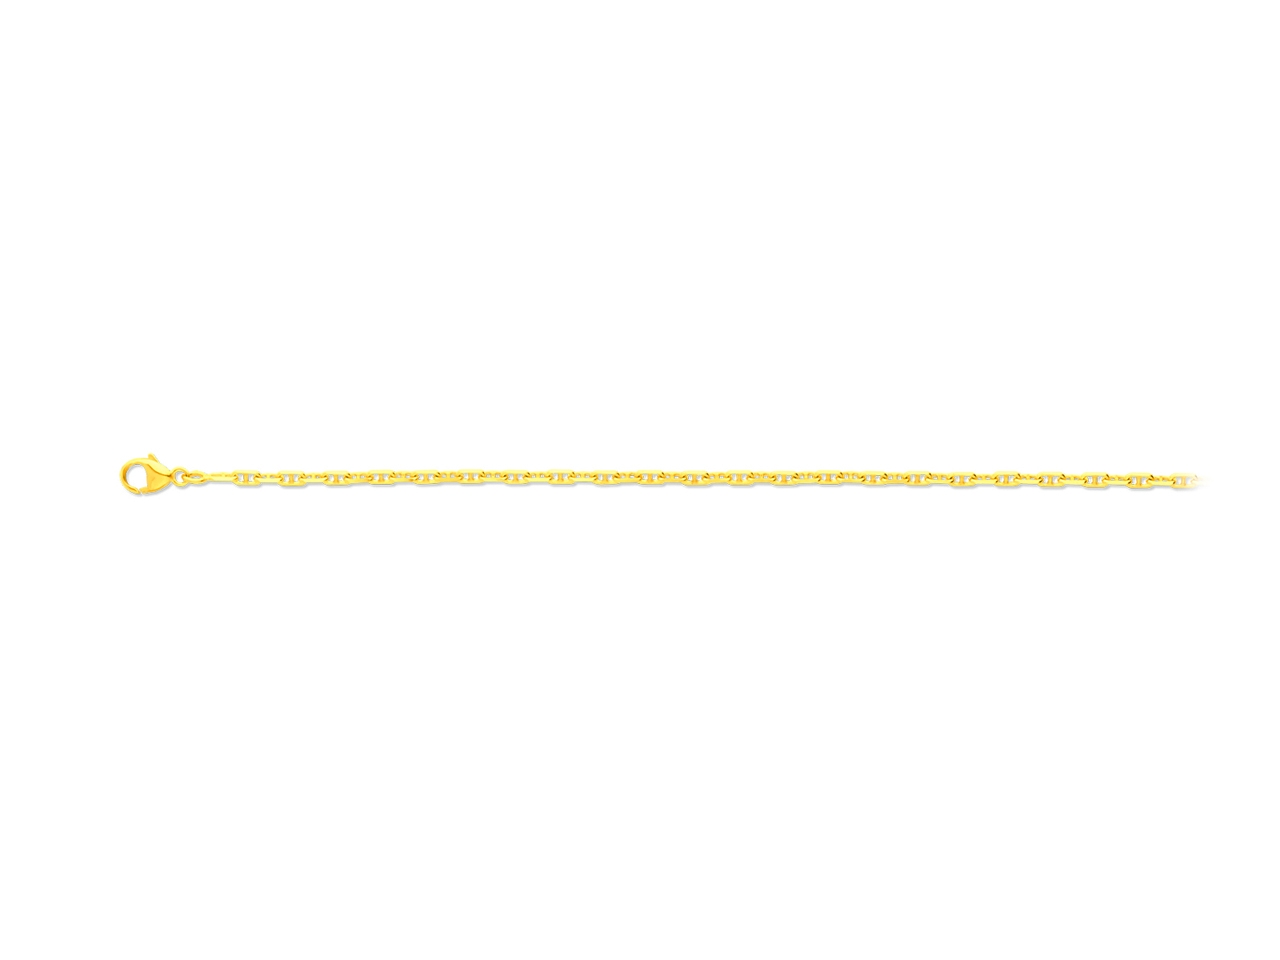 Collier maille Forçat marine diamantée 2,3 mm, 40 cm, Or jaune 18k